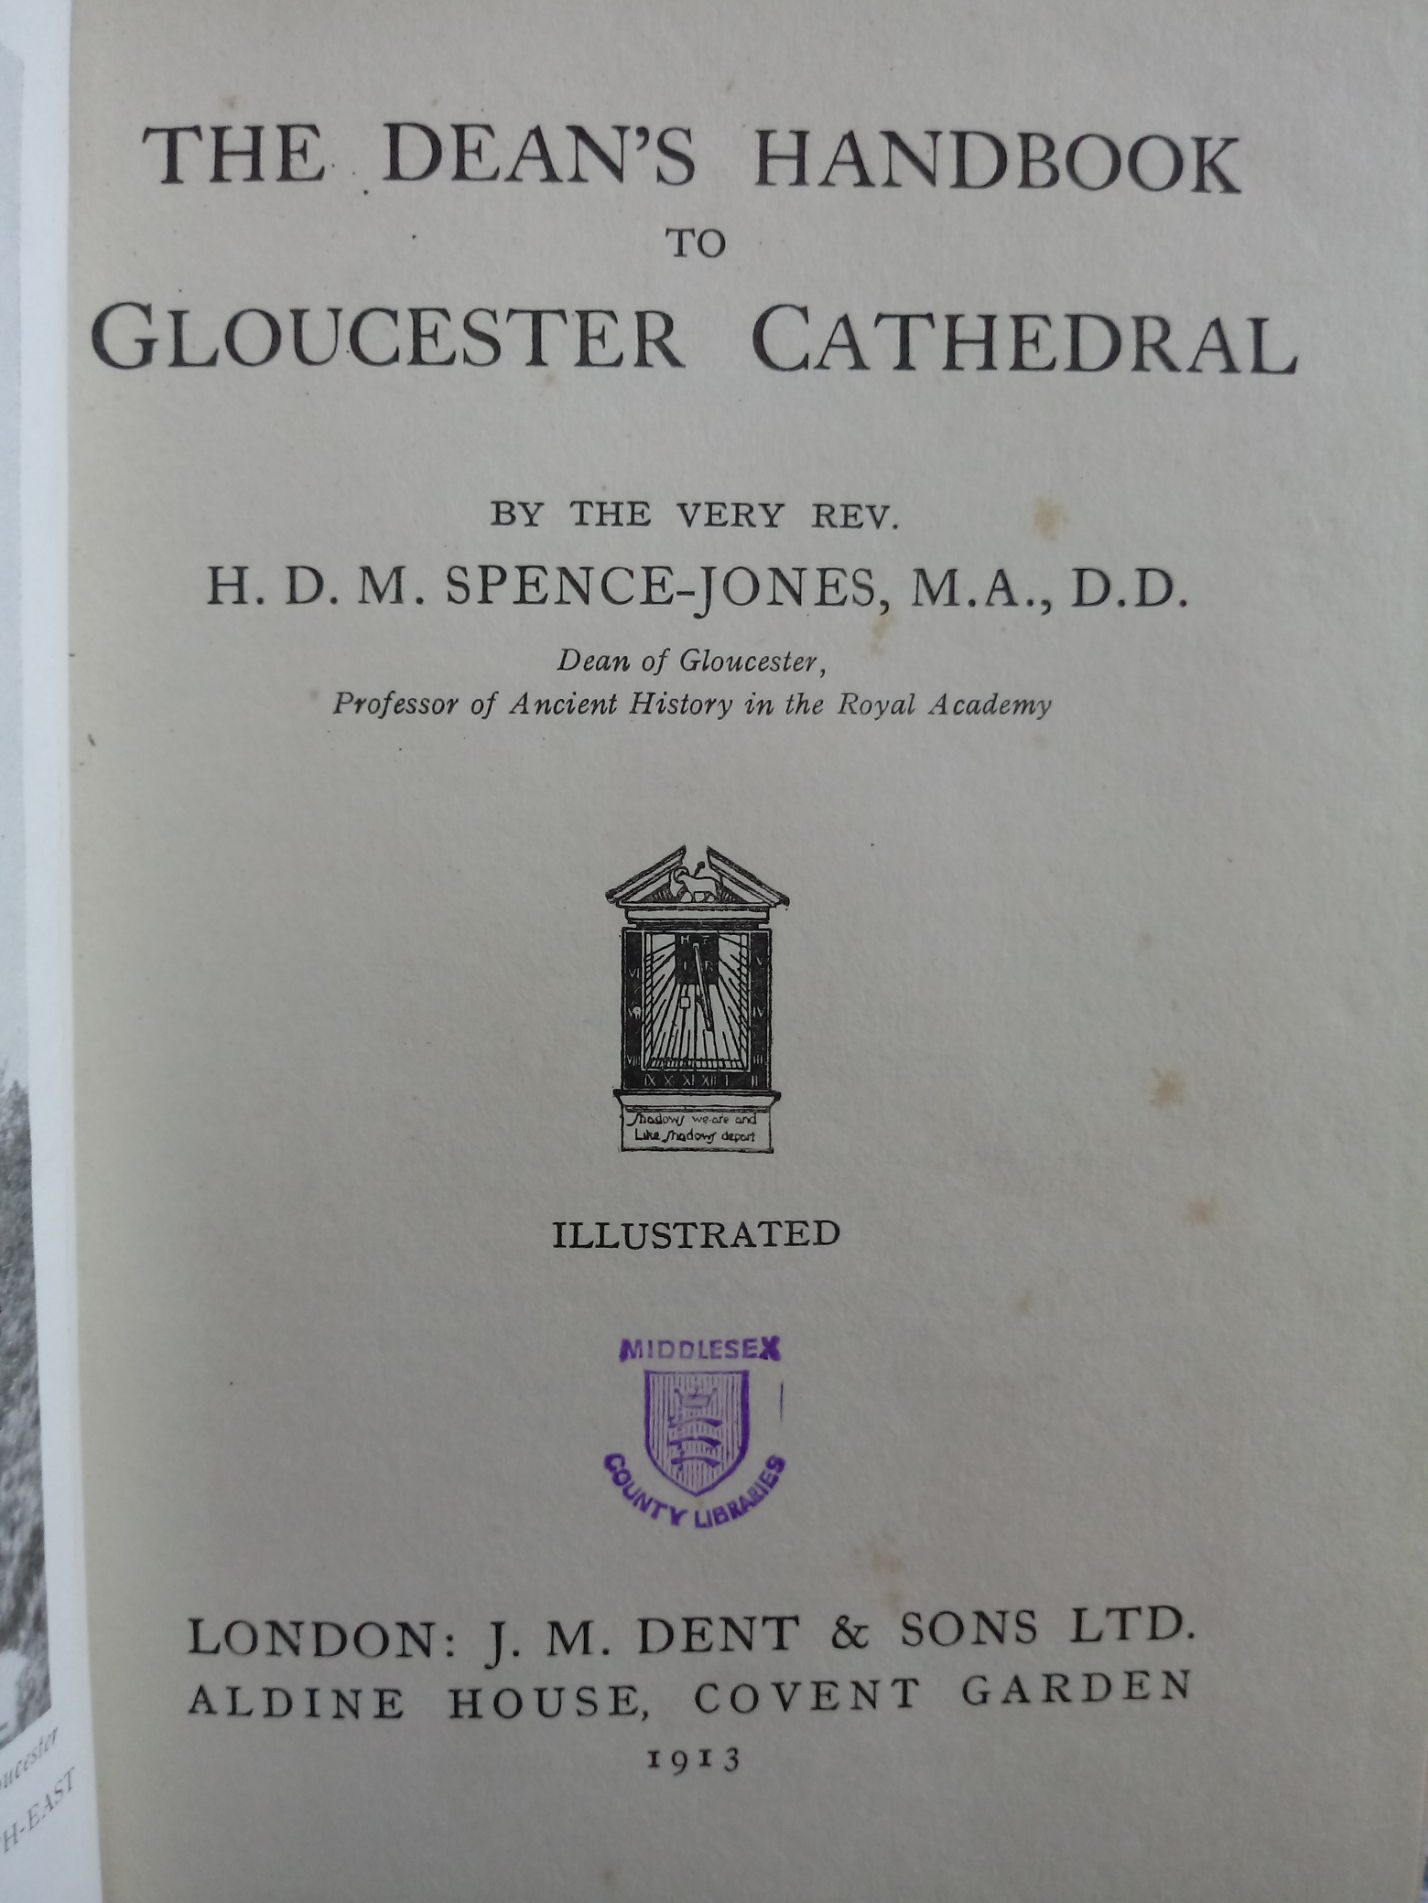 The Dean's Handbook To Gloucester Cathedral by The Very Rev: Dr. Spence-Jones hardback book 116 - Image 4 of 4